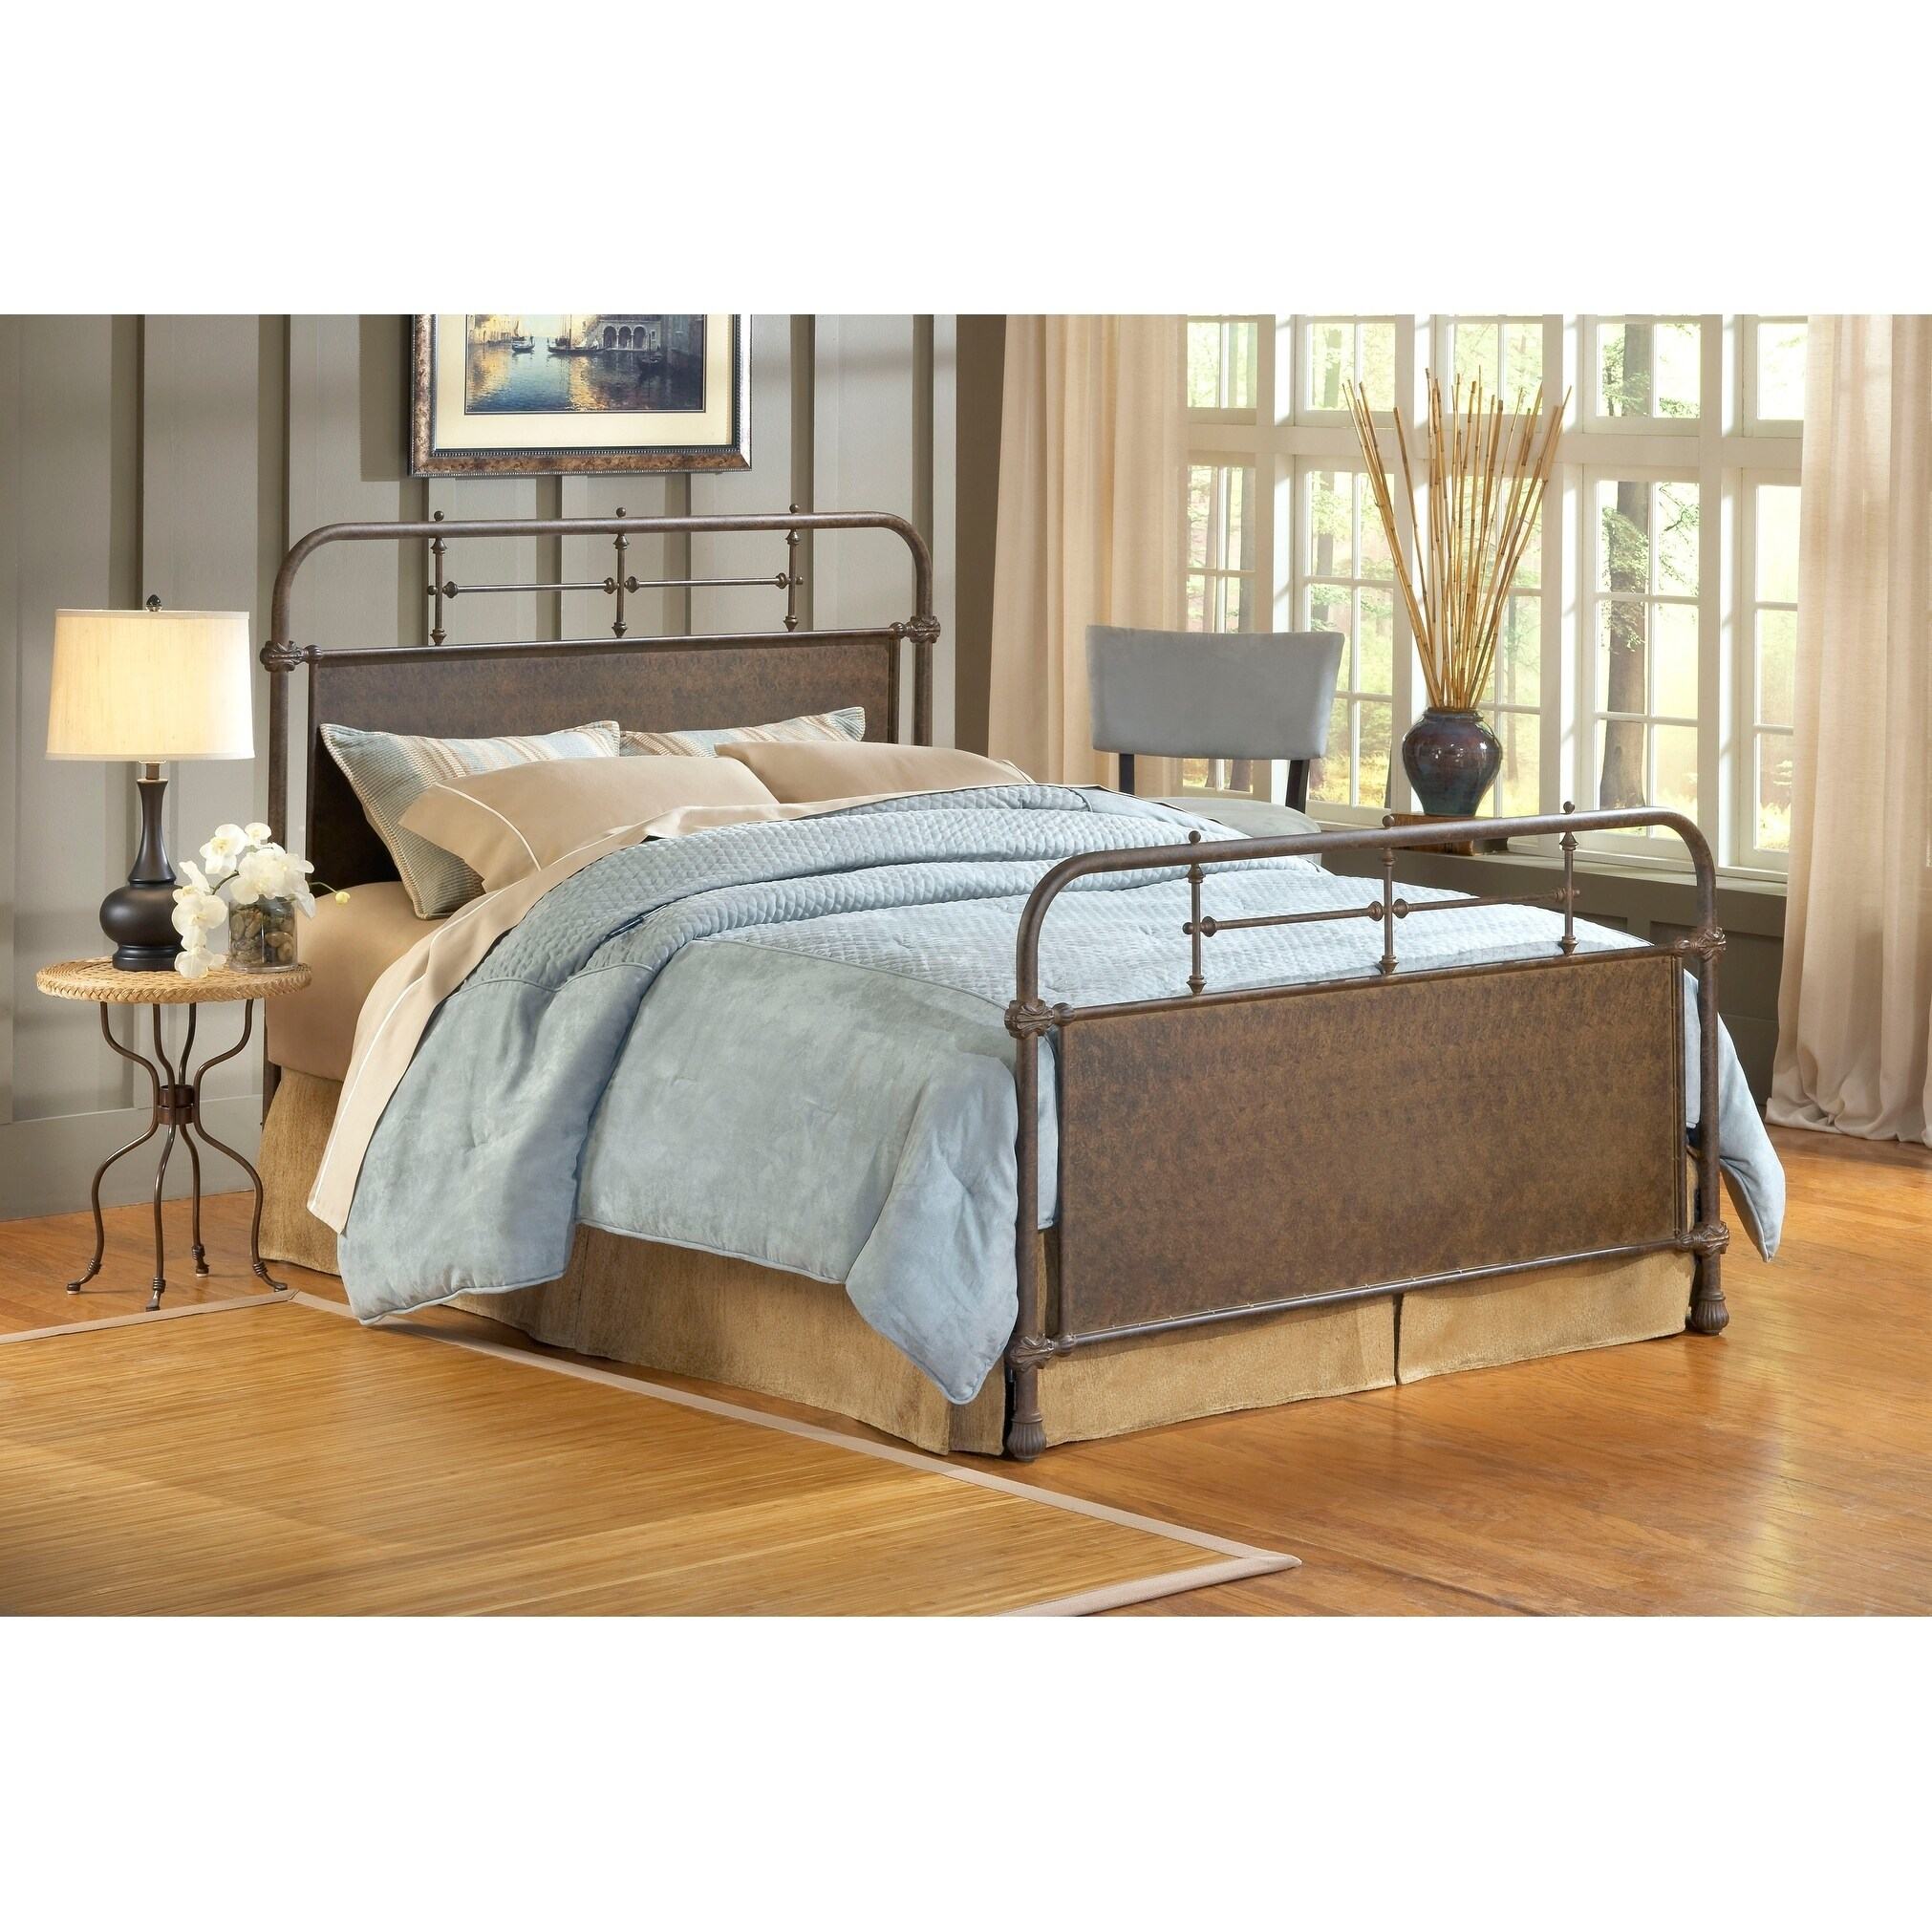 groups furniture group collections legacy full classic wolf gardiner kids set bhf and bedroom by